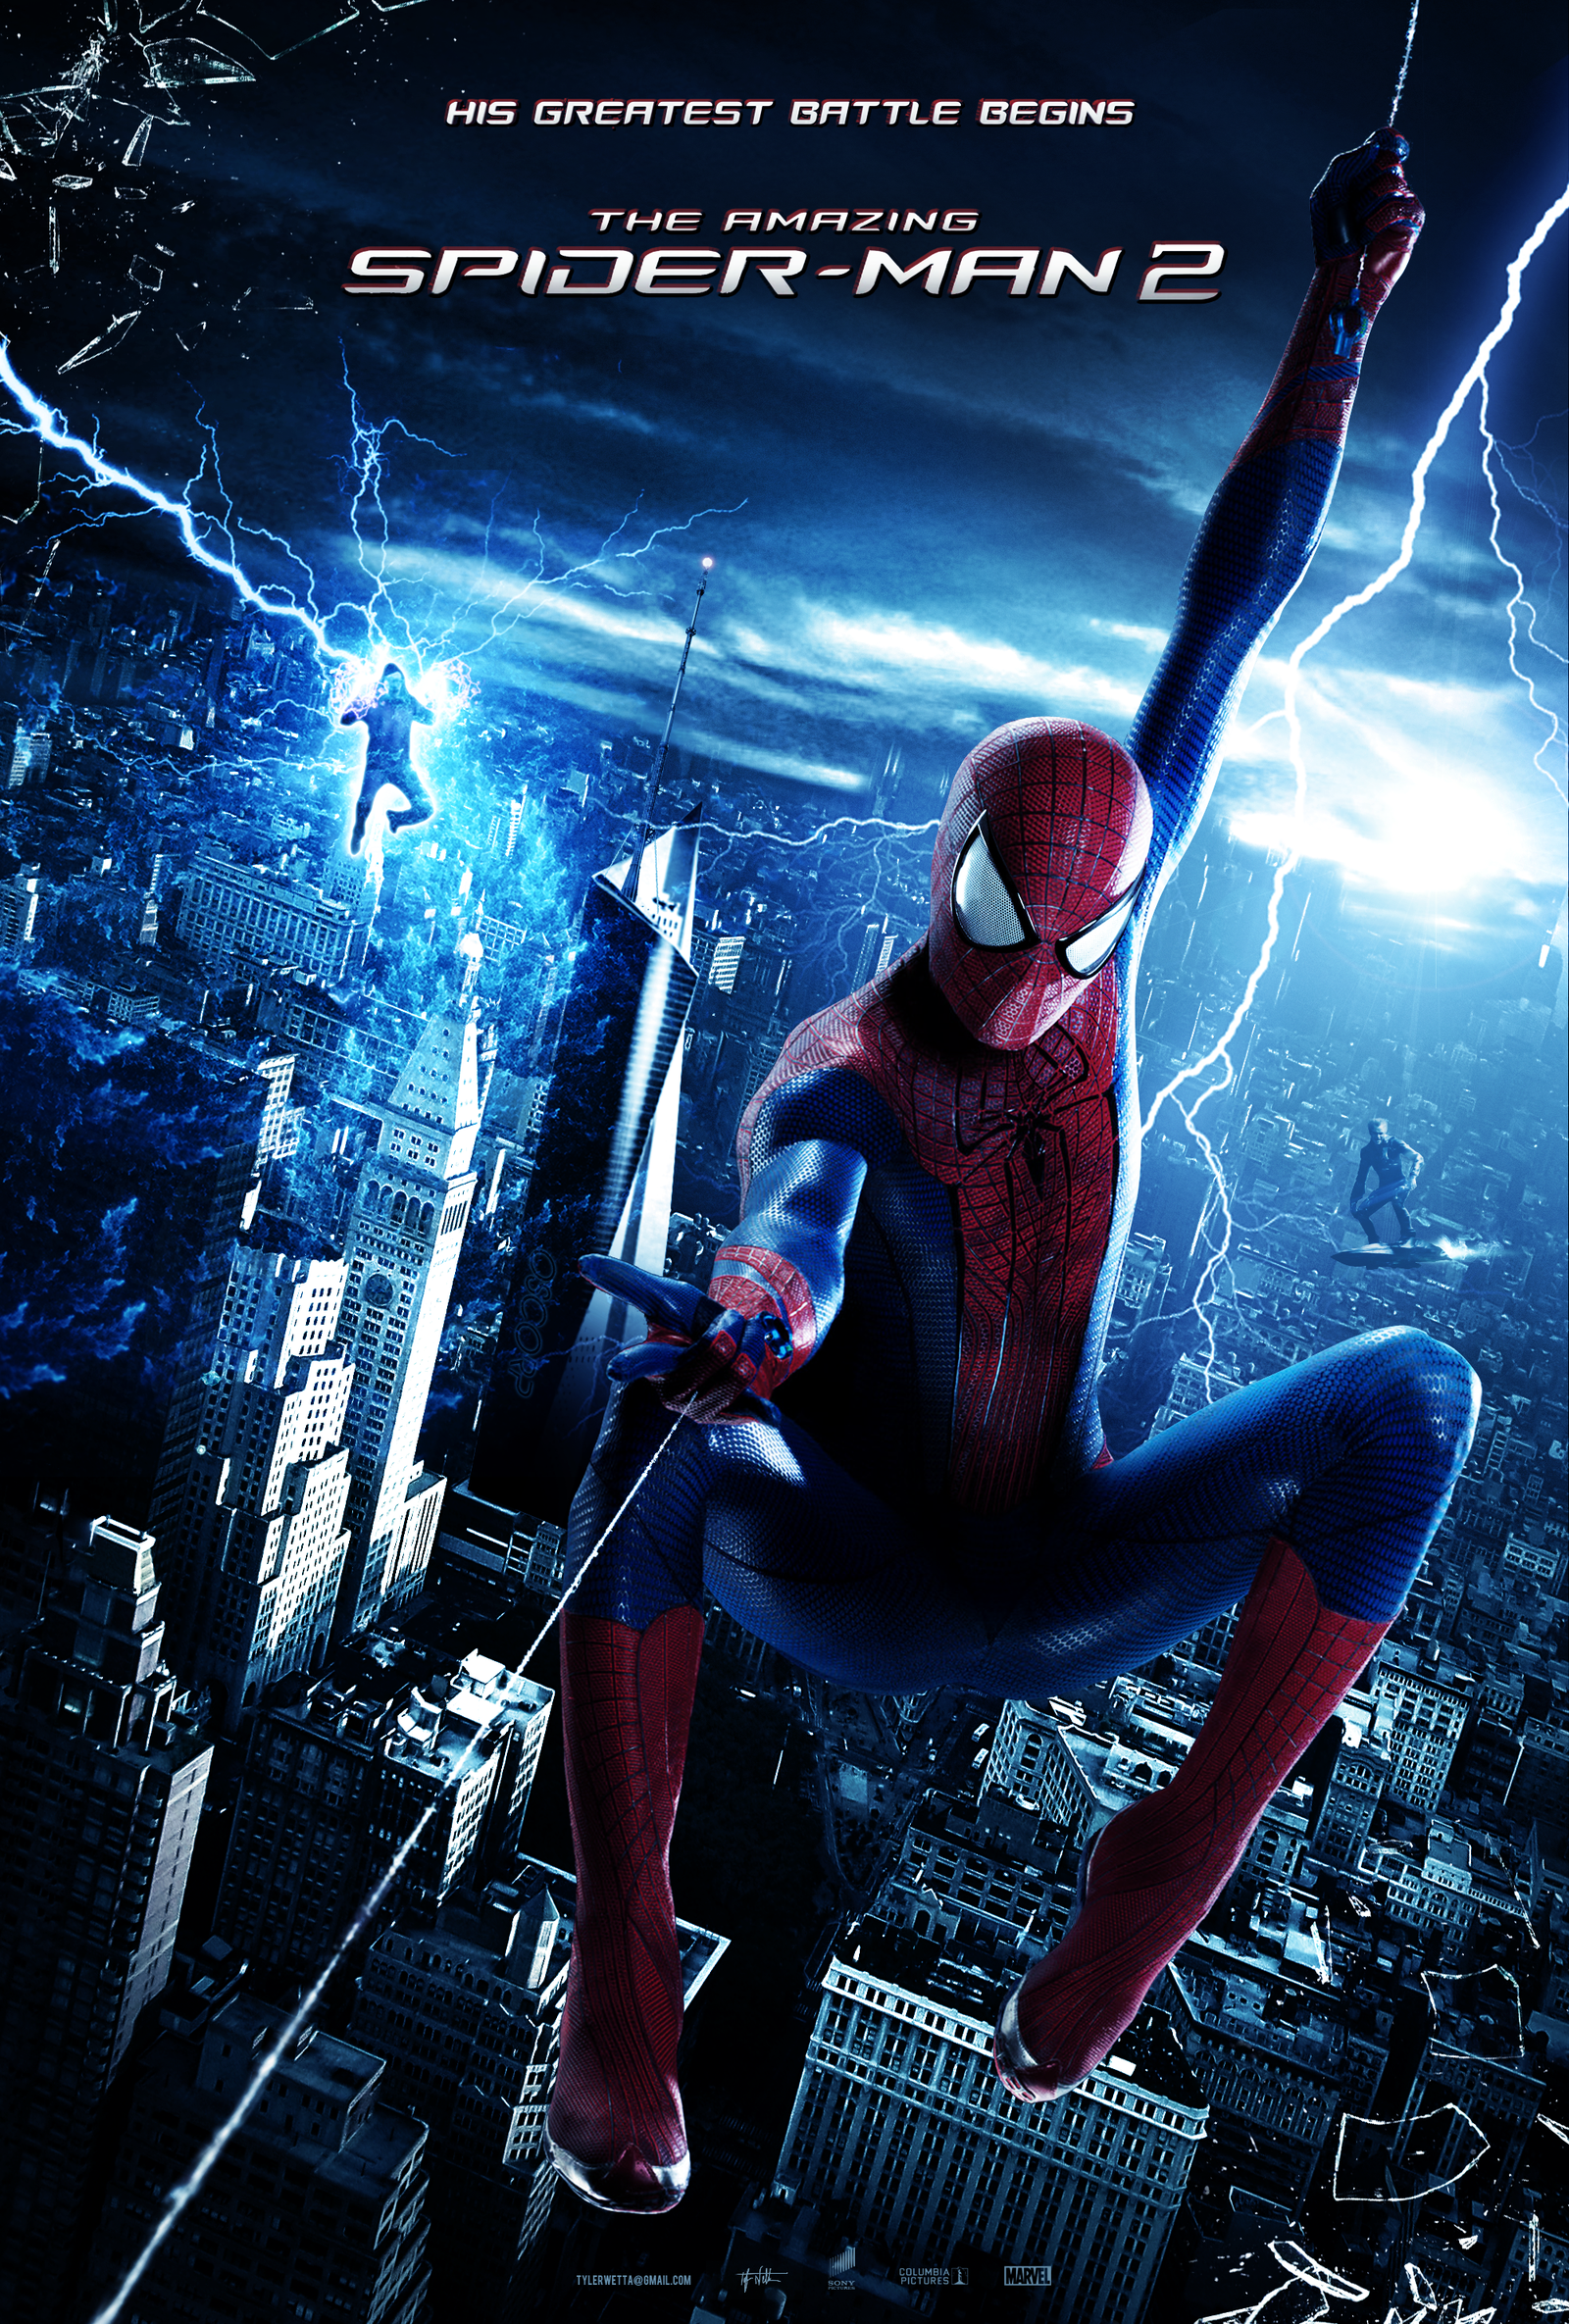 The Amazing Spider Man 2 Poster By Ancoradesign On Deviantart The Amazing Spiderman 2 Spiderman Movie Amazing Spiderman